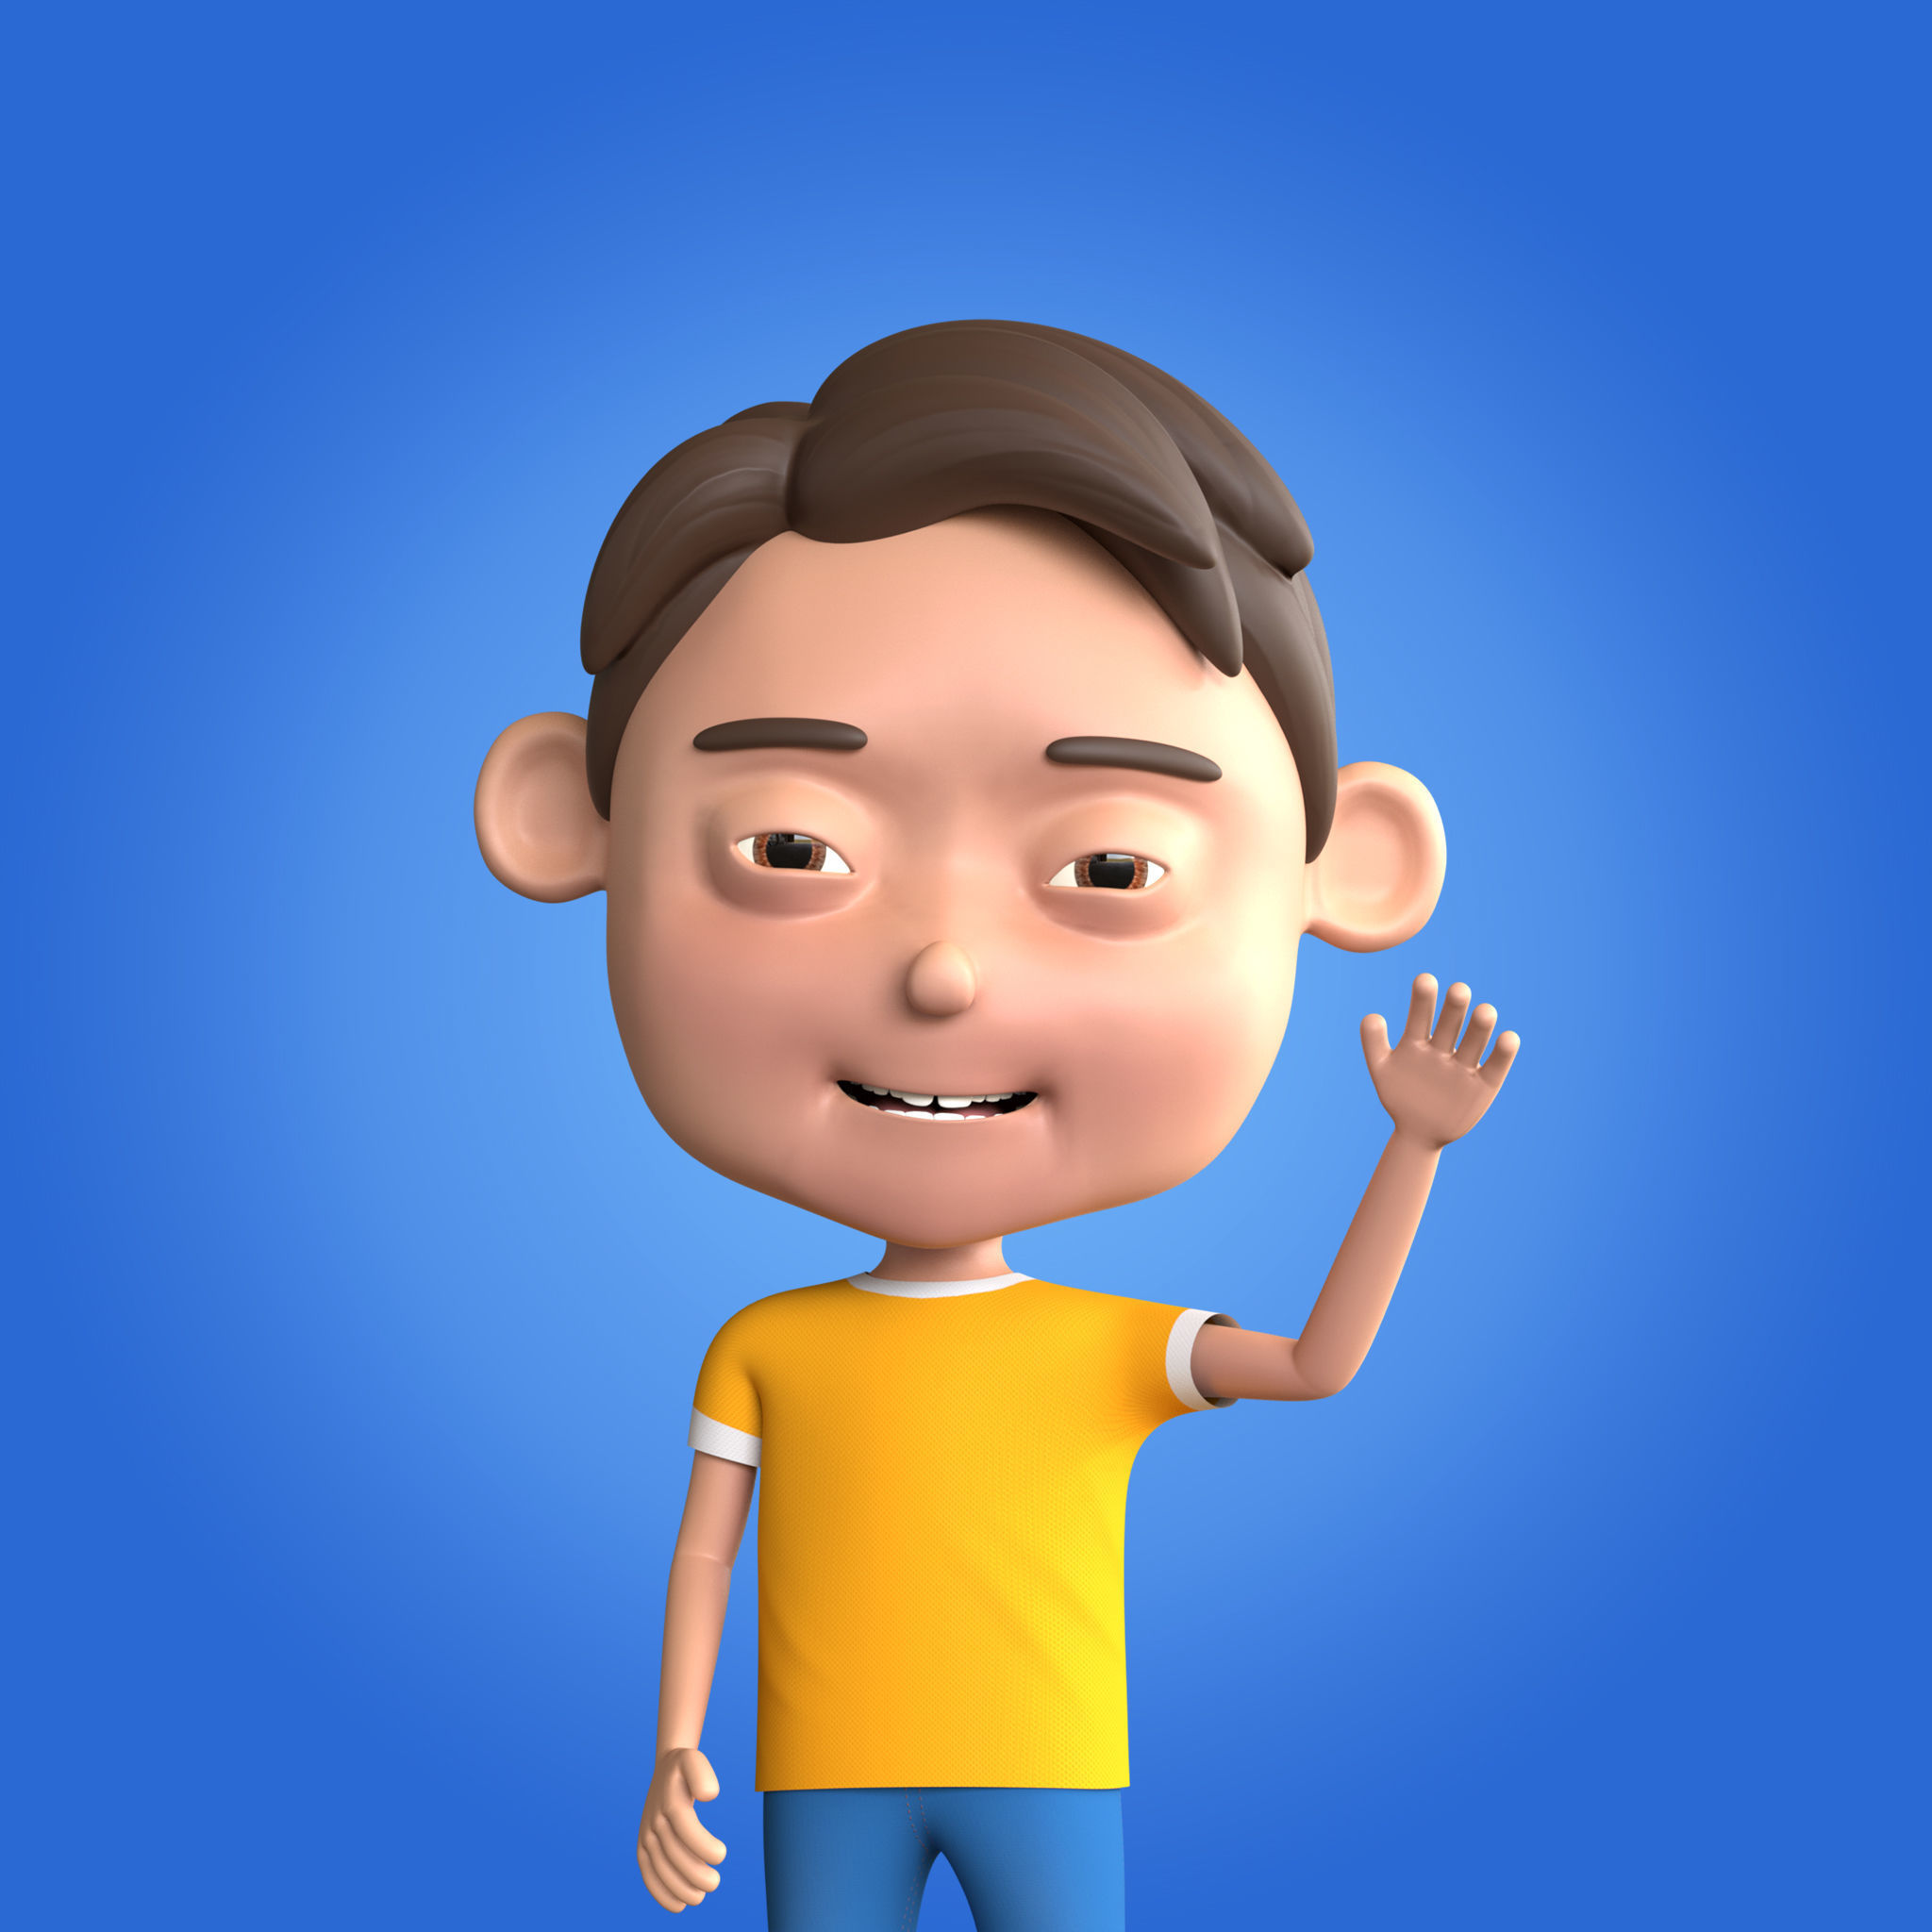 Cartoon Boy Rigged and Animated